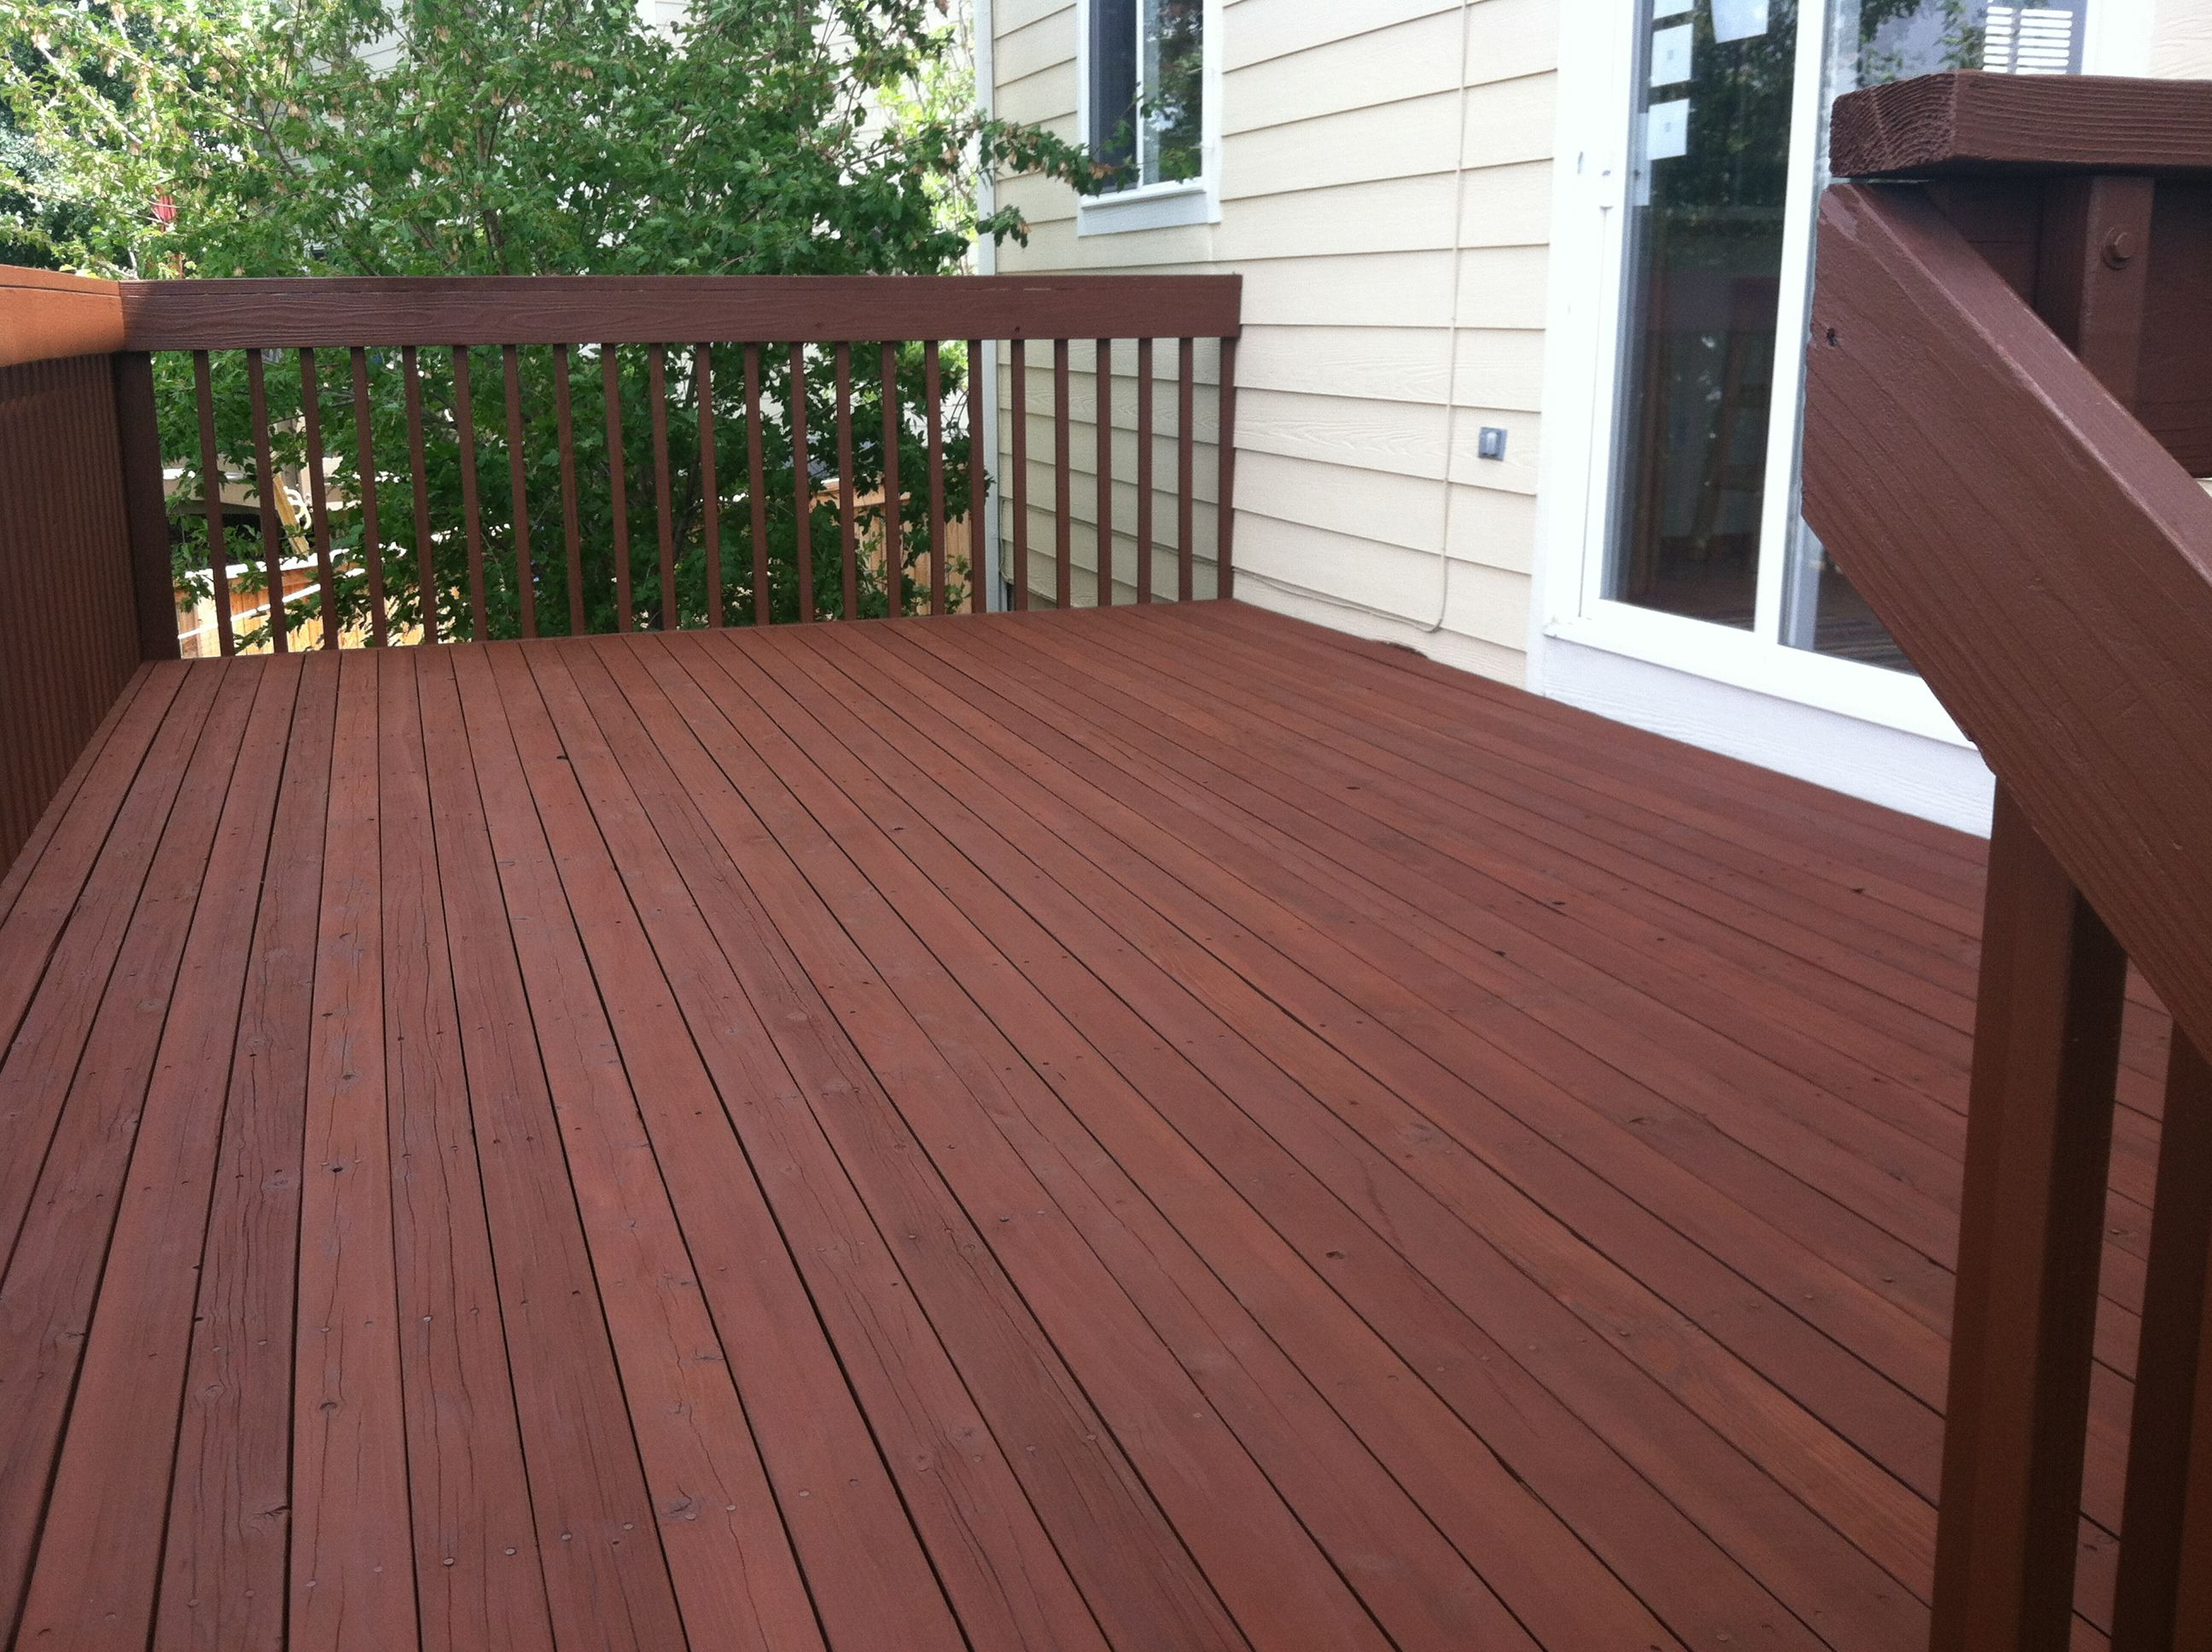 Cabot Deck Stain In Semi Solid Oak Brown In 2019 Deck